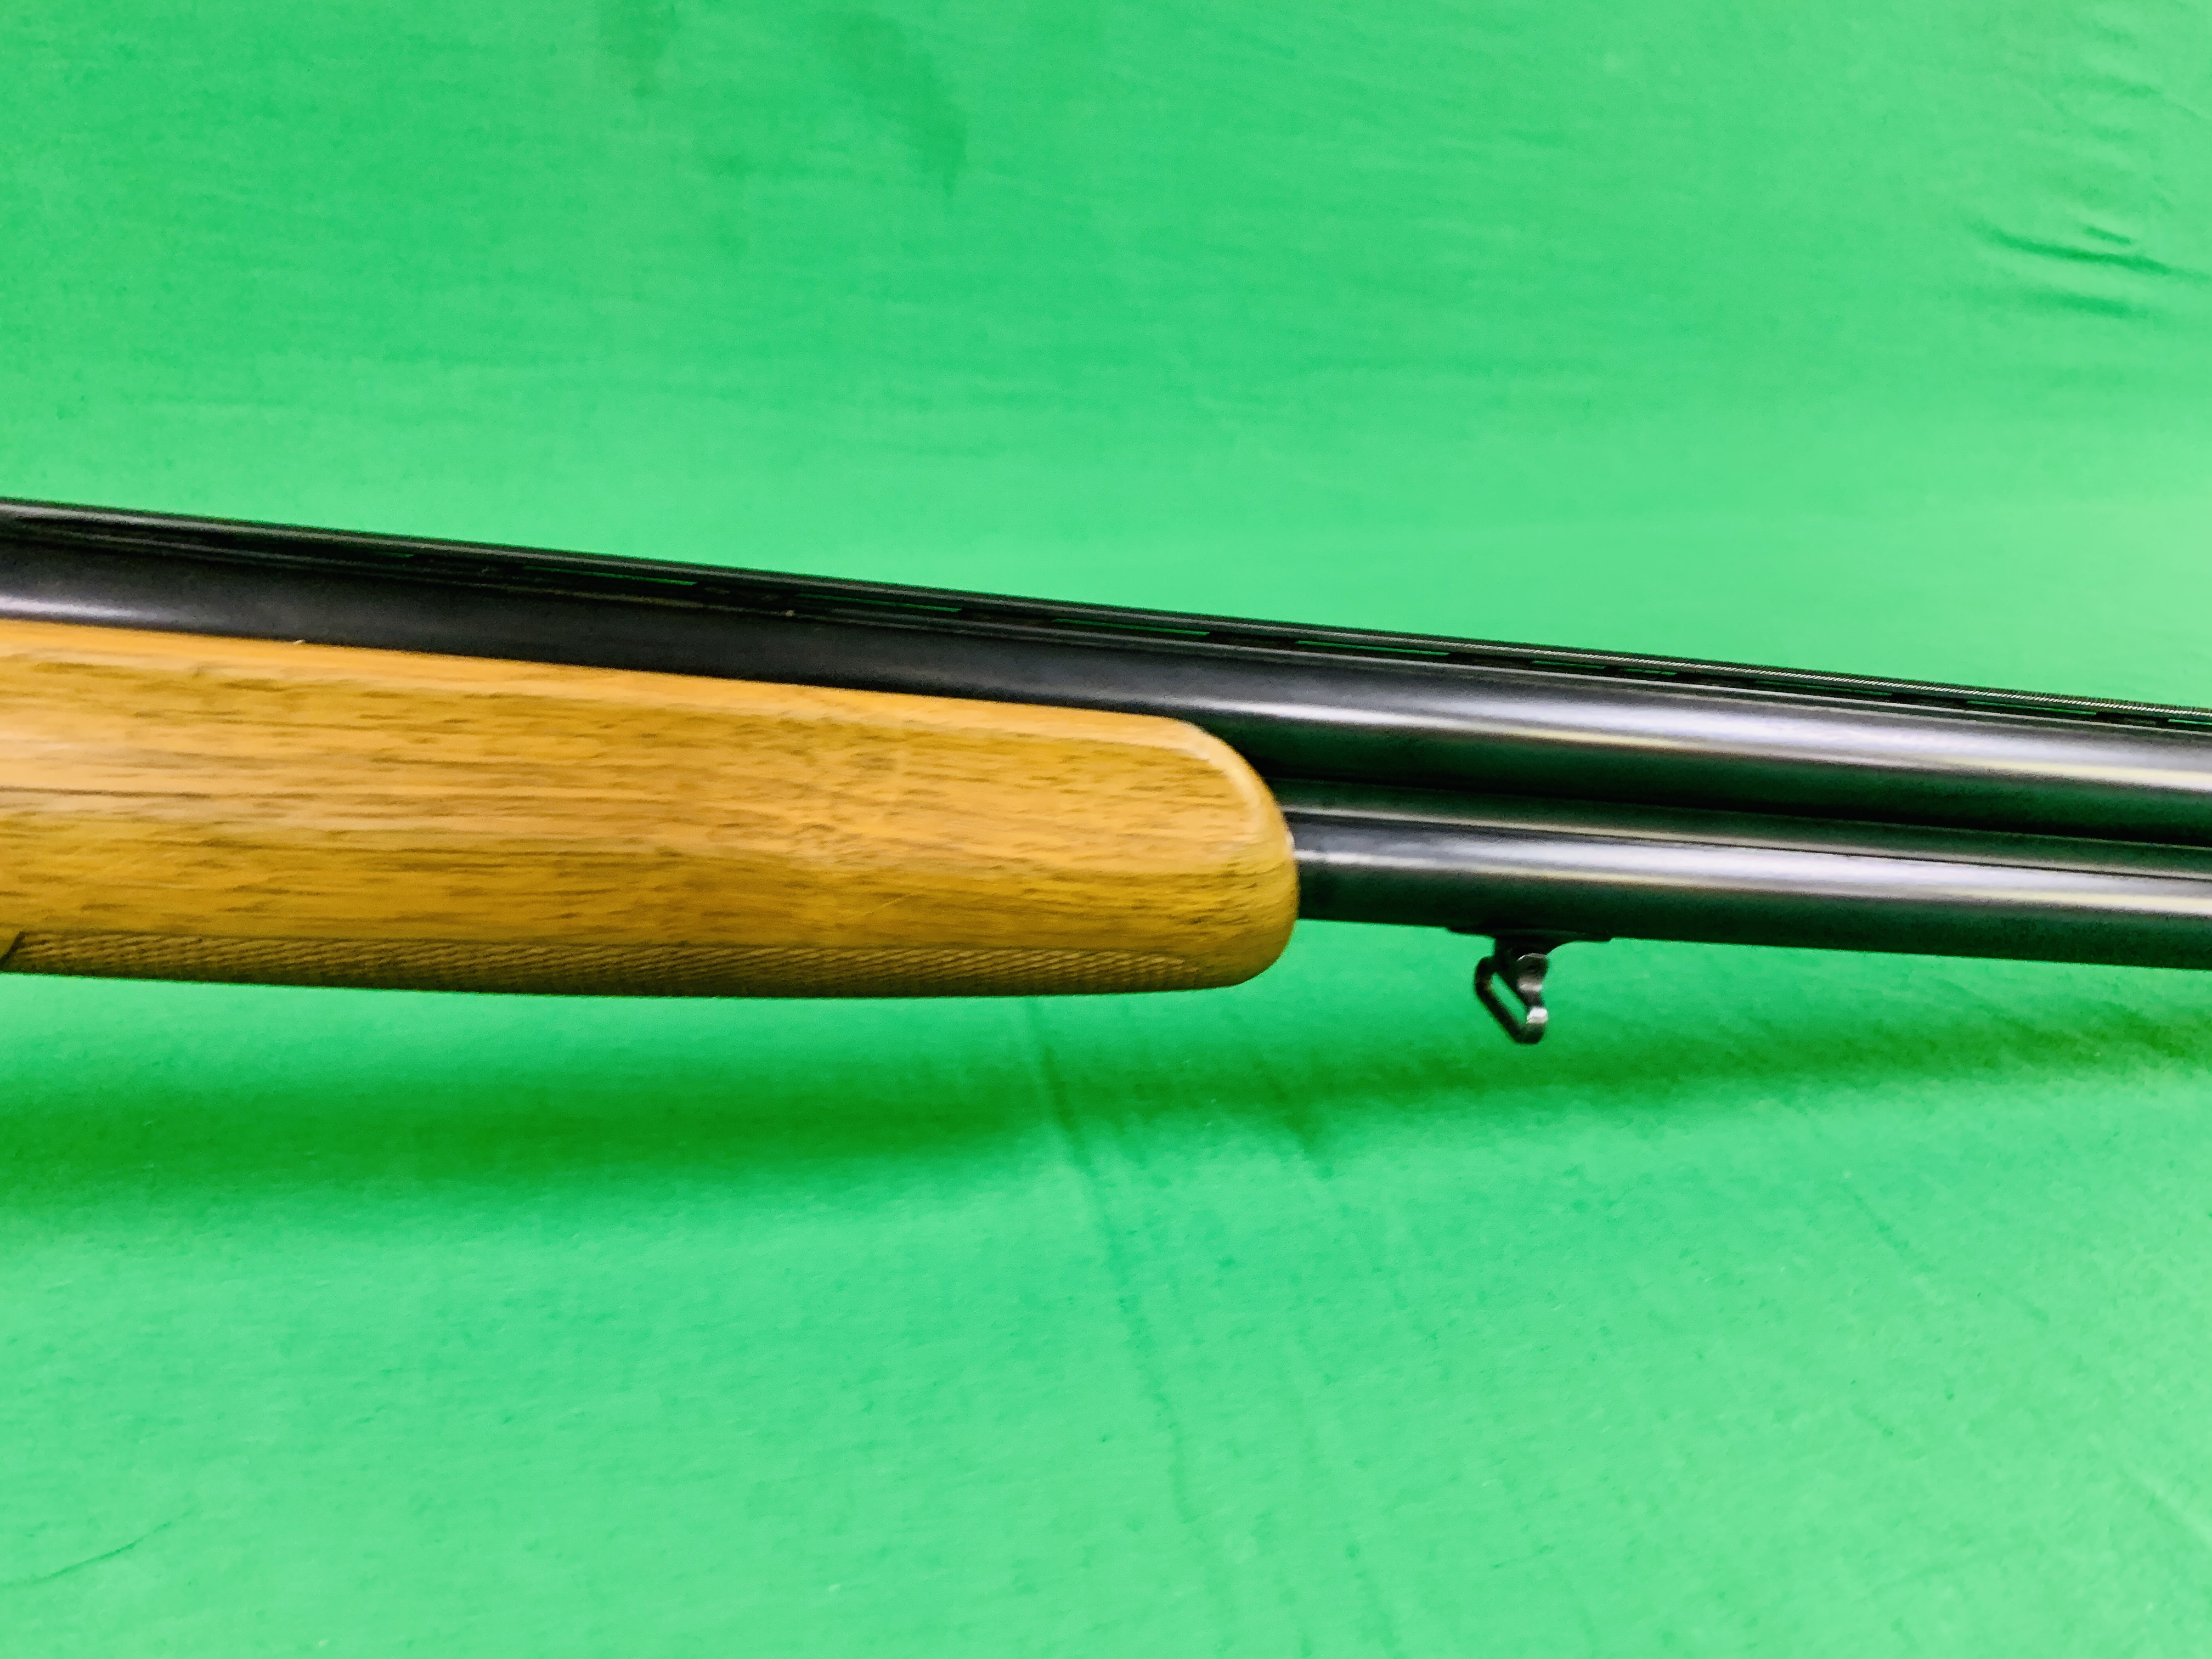 12 BORE BERETTA OVER AND UNDER SHOTGUN # B17388B WITH GUN SLEEVE - (ALL GUNS TO BE INSPECTED AND - Image 5 of 9